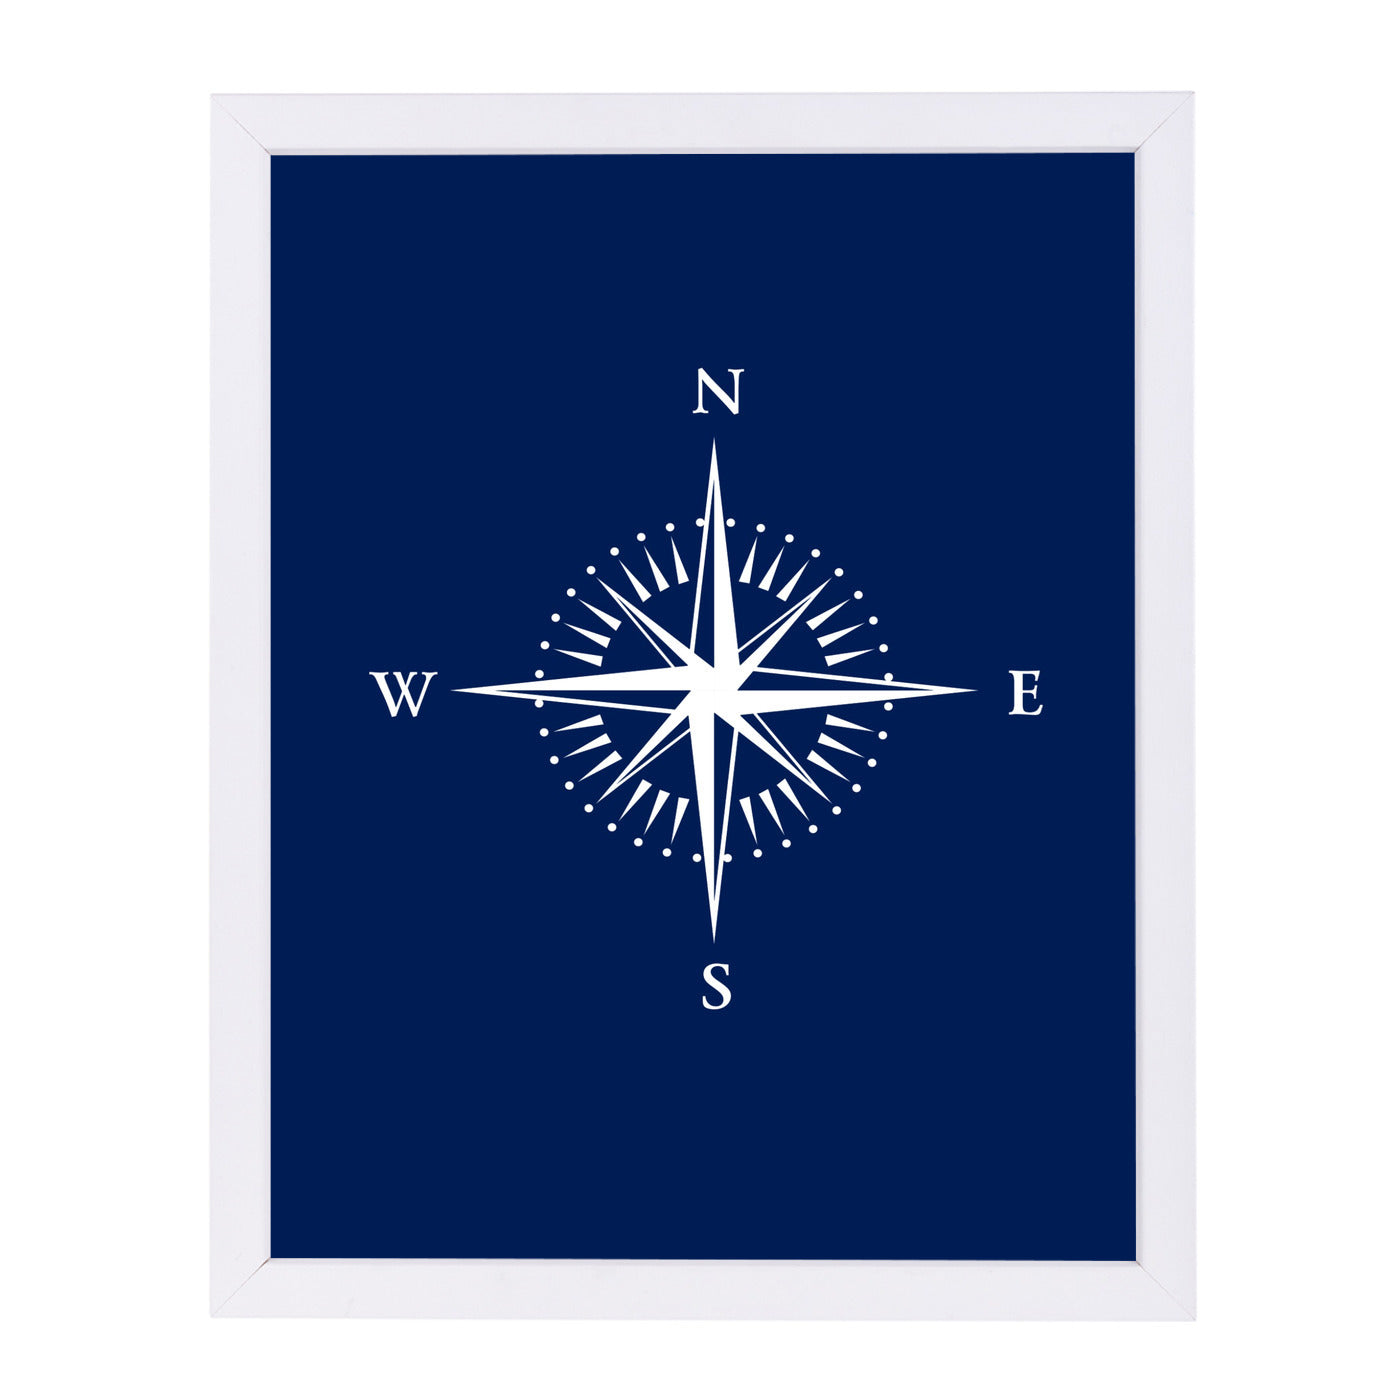 Nautical Equipment 2 Navy by Samantha Ranlet Framed Print - Wall Art - Americanflat